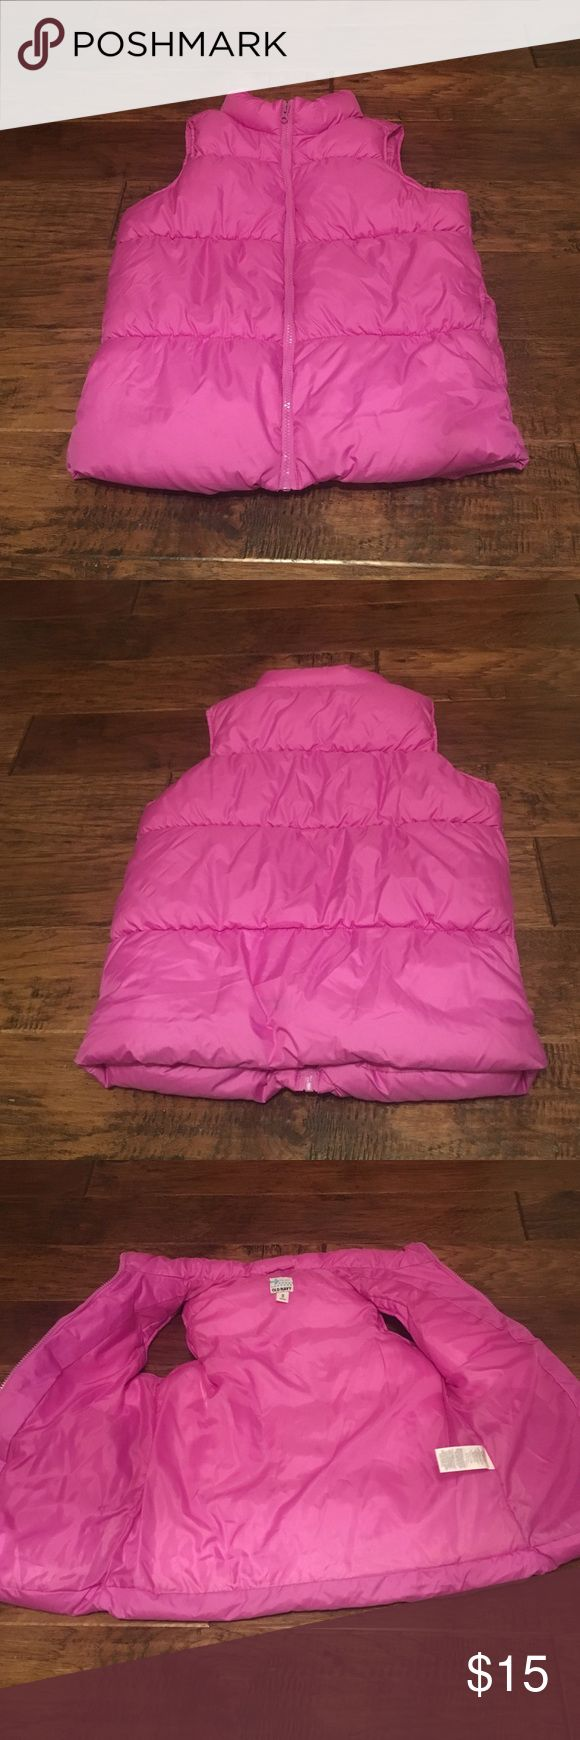 Old navy puffy vest Purple old navy puffy vest. In outstanding condition 10/10 no flaws. Old Navy Jackets & Coats Vests